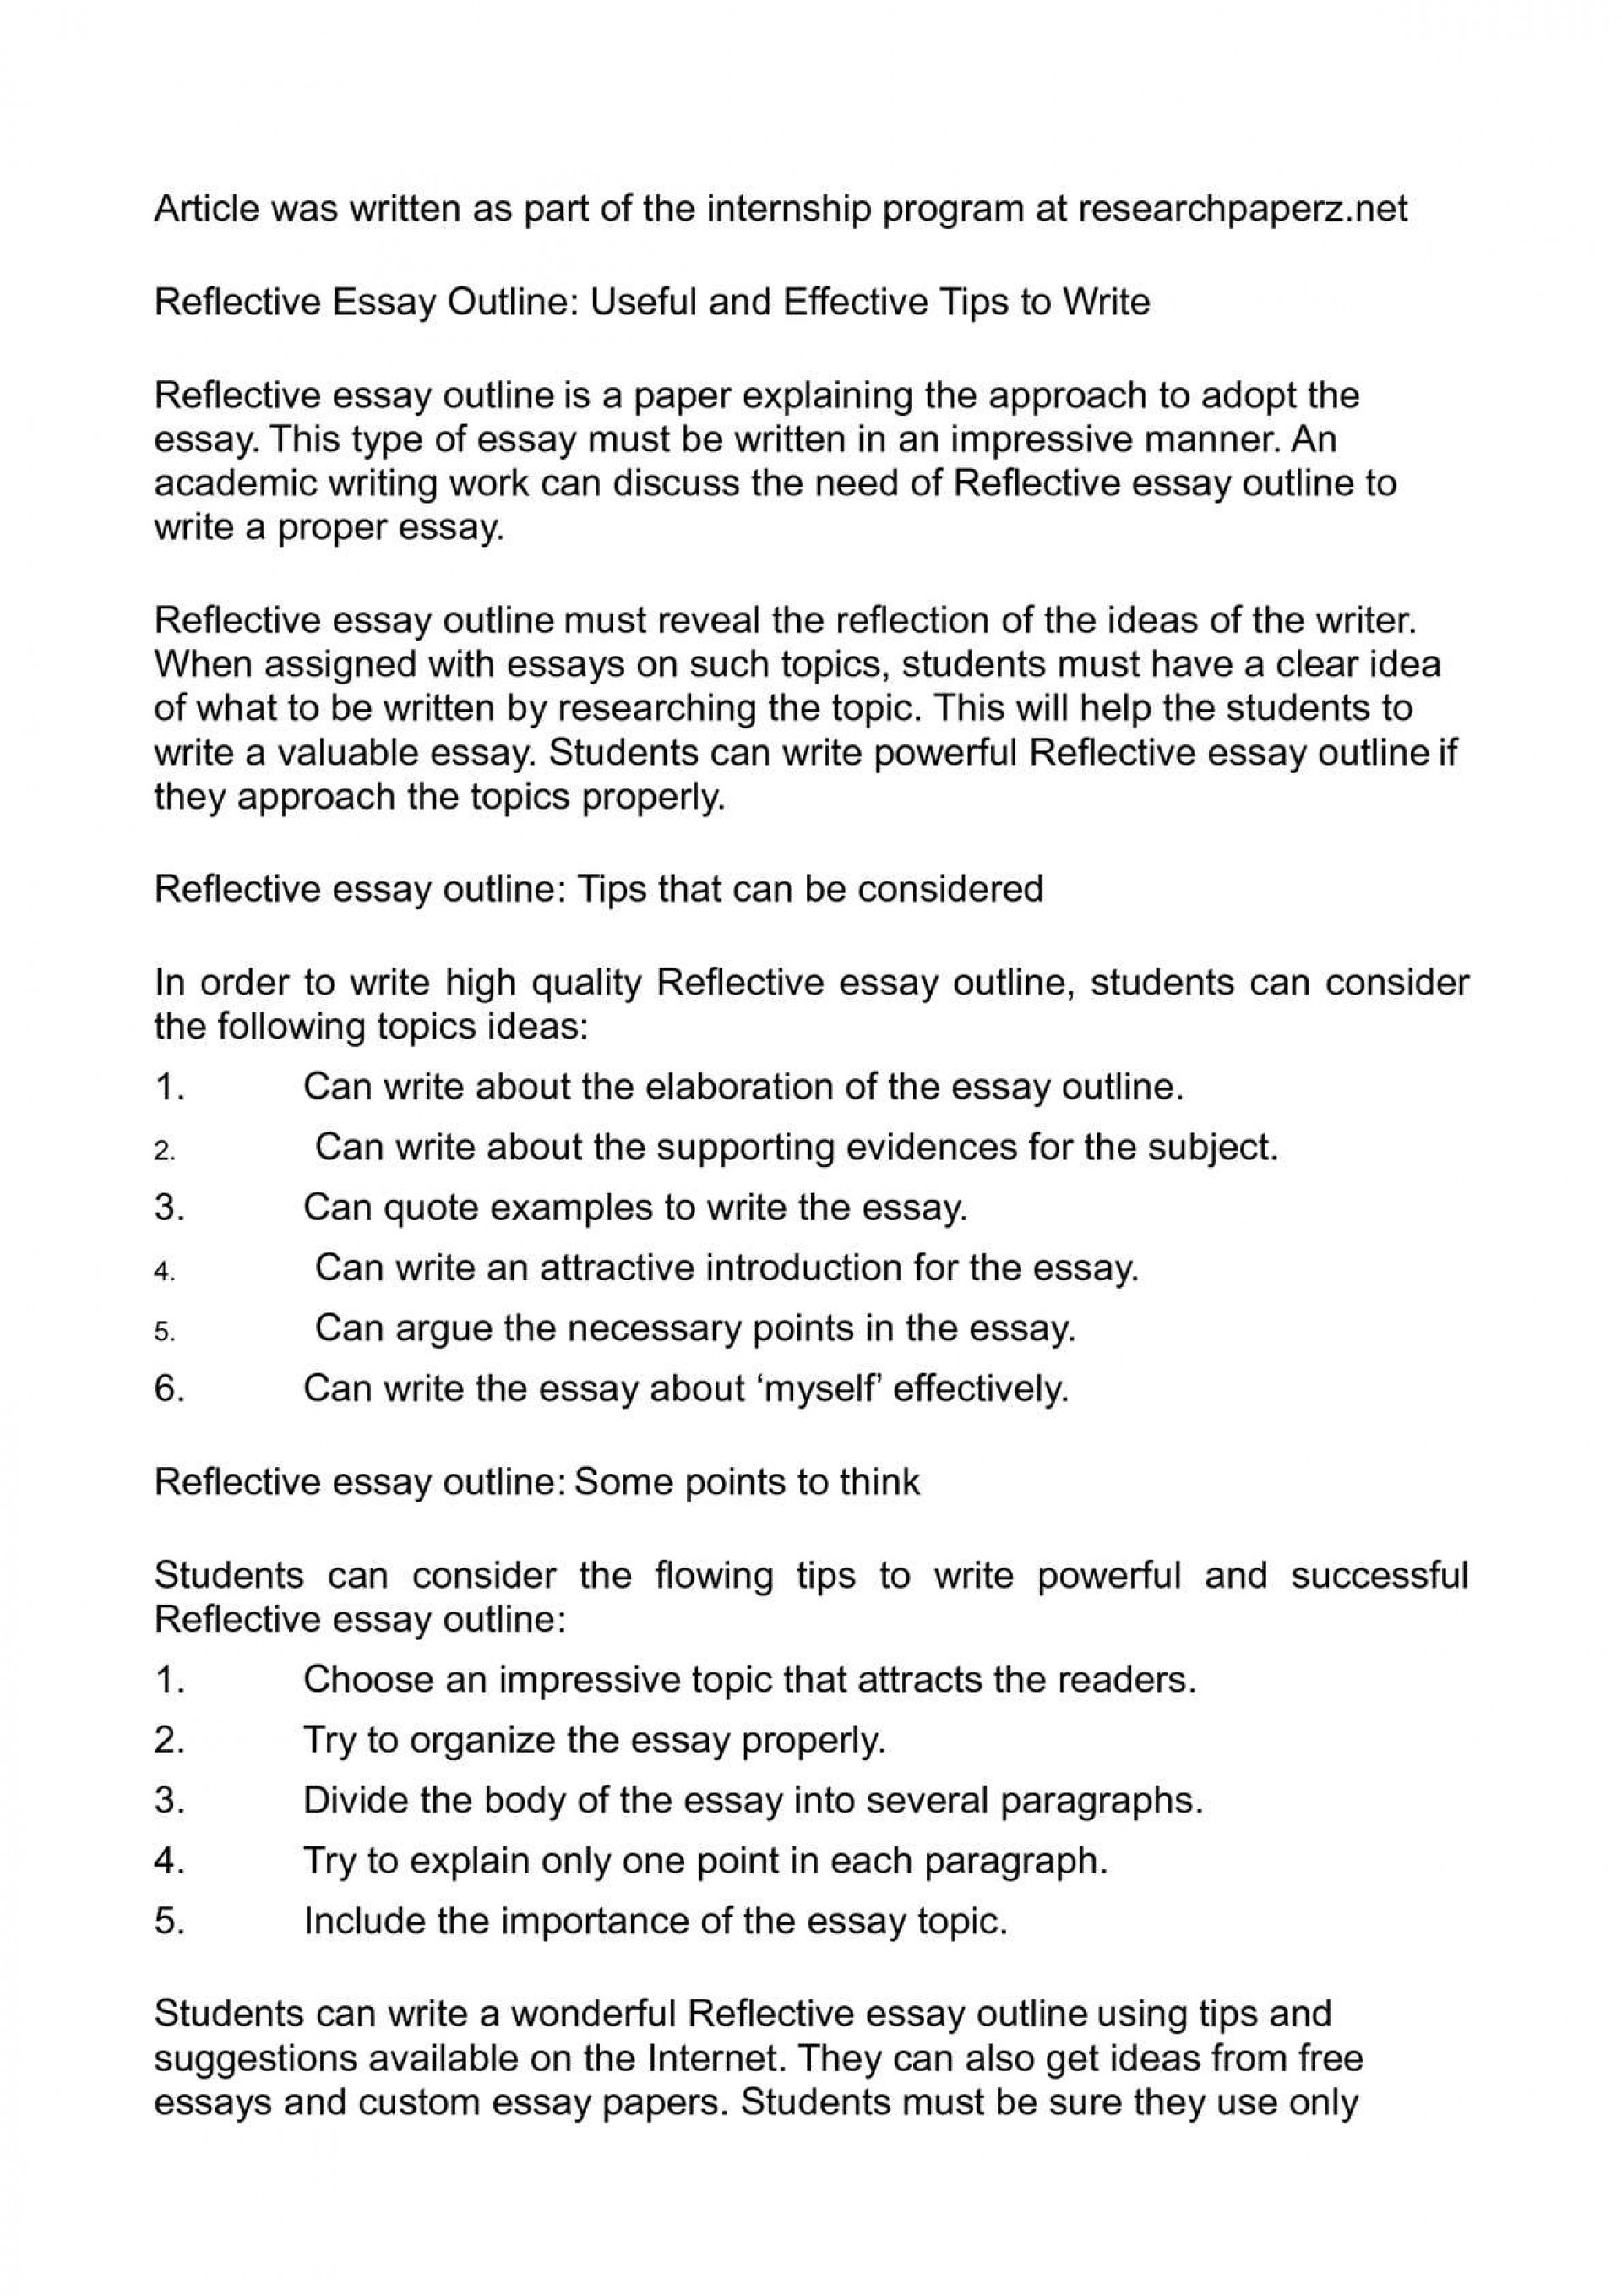 001 Reflective Essay Outline Useful And Effective Tips To Wri On Critical Reading Writing Magnificent Narrative Pdf 1920